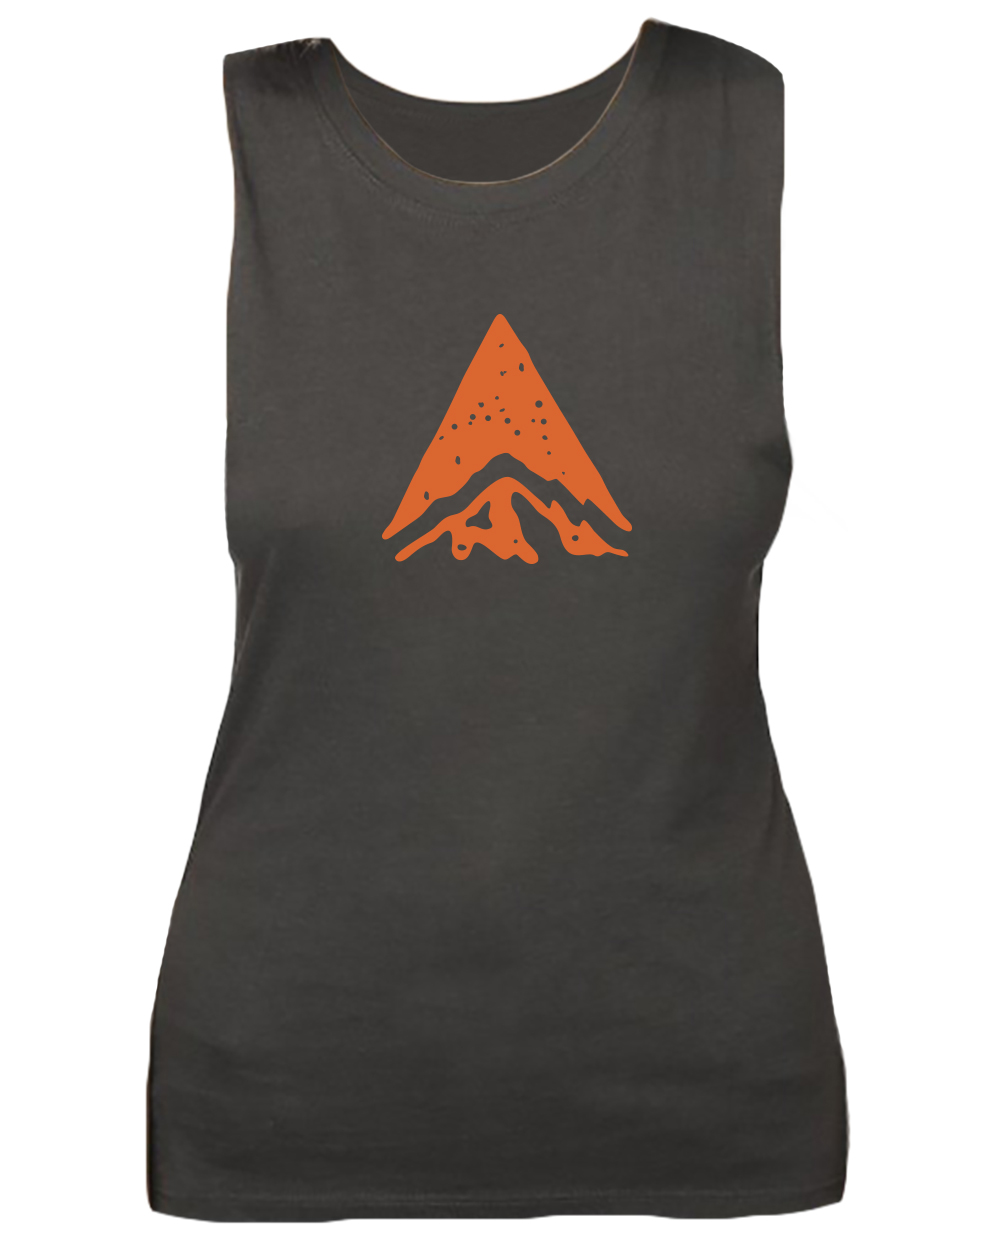 This breathable, wicking tank is sustainable and environmentally friendly, made of viscose bamboo and organic cotton. The front features the Bridger orange waypoint logo; the small Bridger stamp logo is on the upper back.